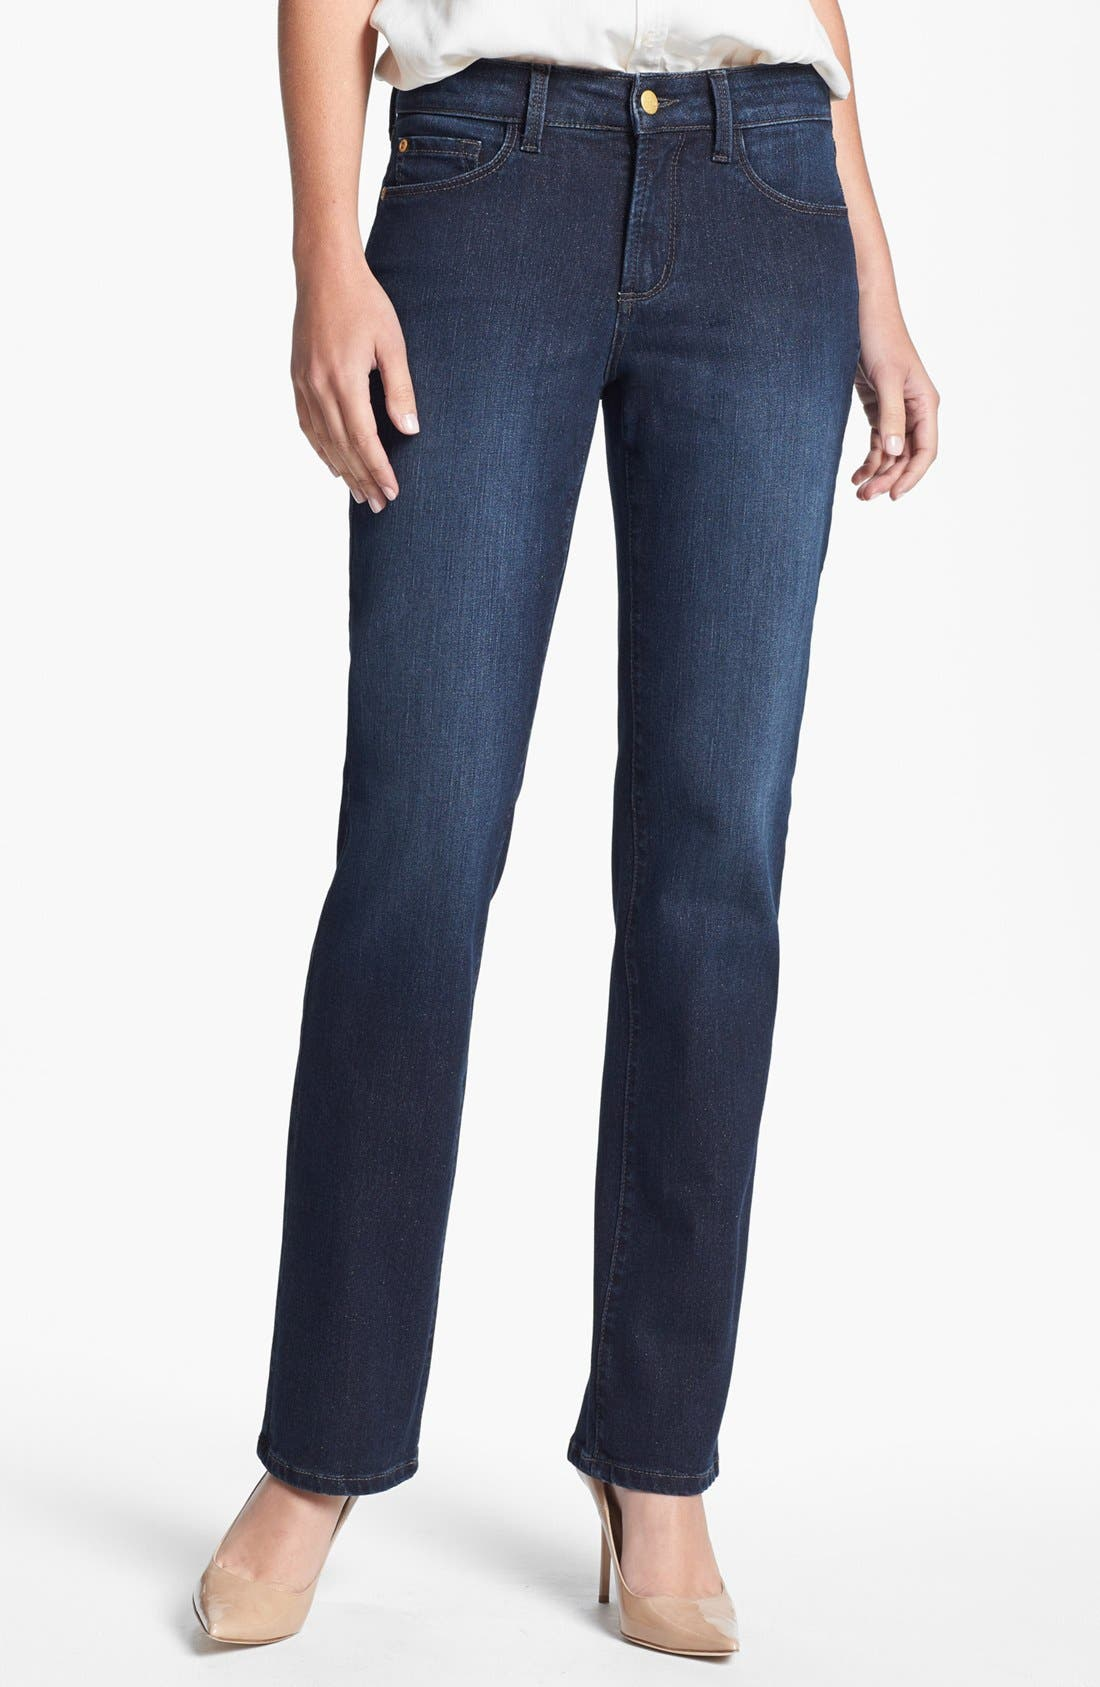 Alternate Image 1 Selected - NYDJ 'Marilyn' Stretch Straight Leg Jeans (Encino)